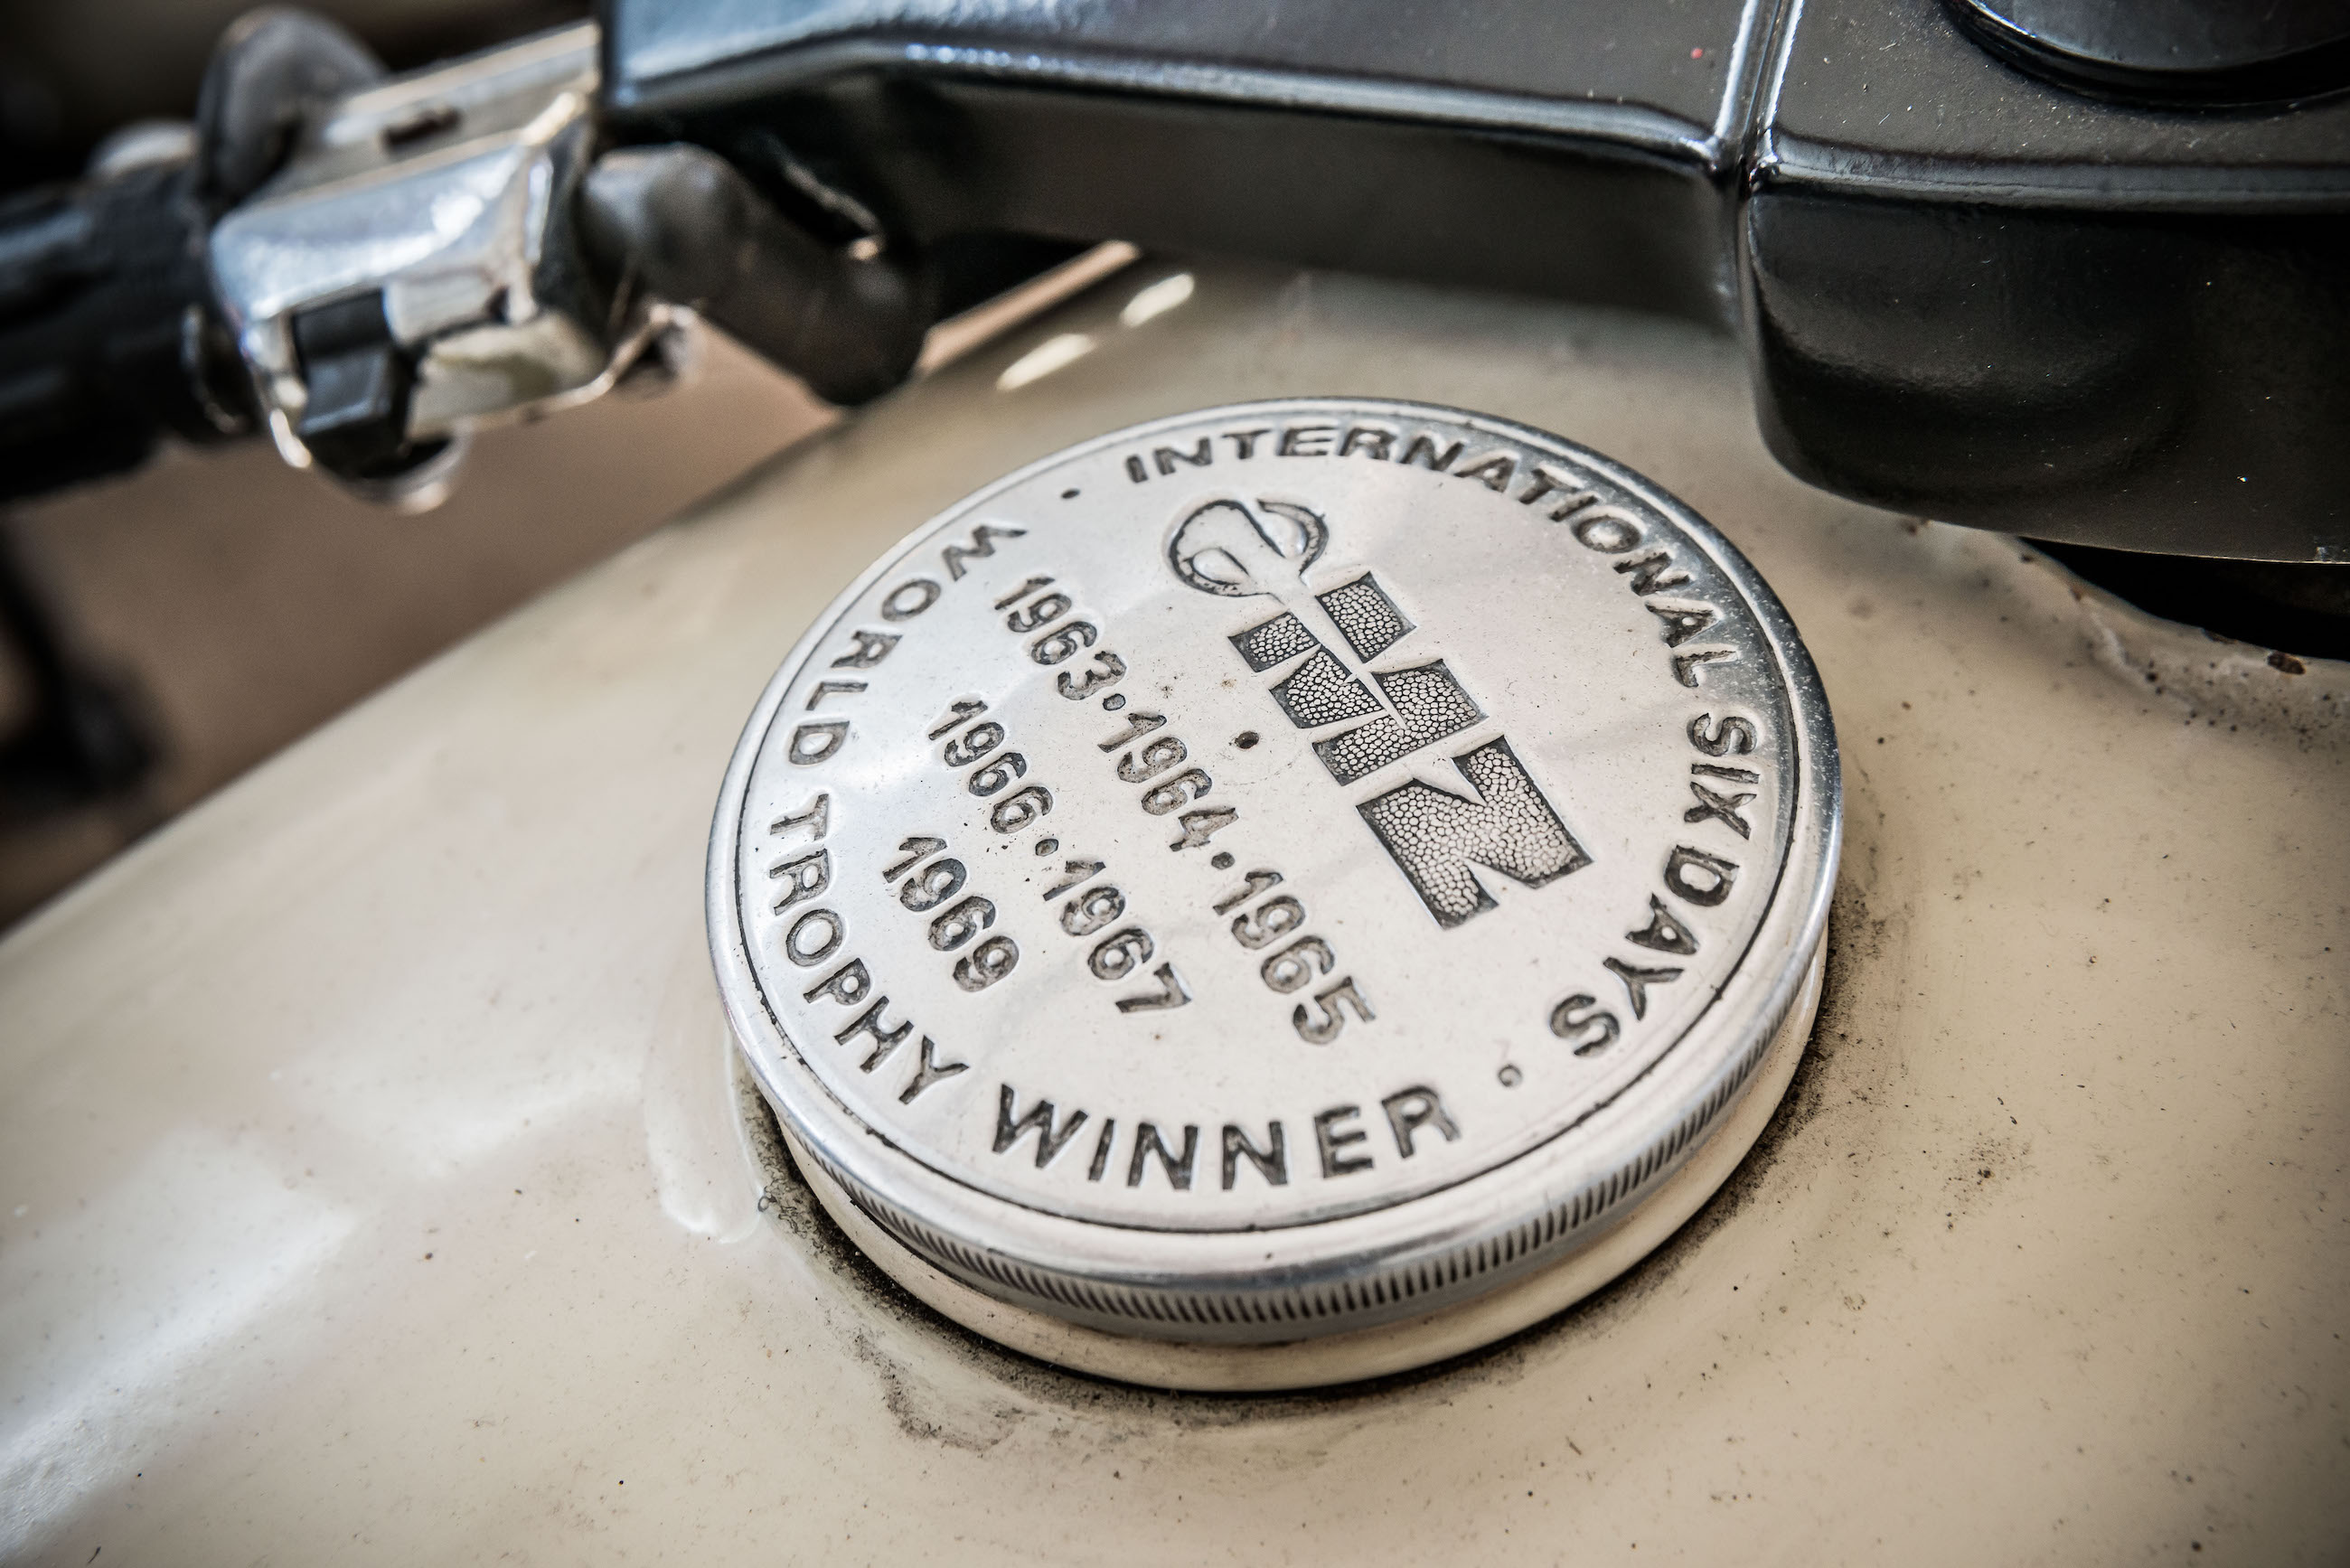 MZ Trophy motorcycle